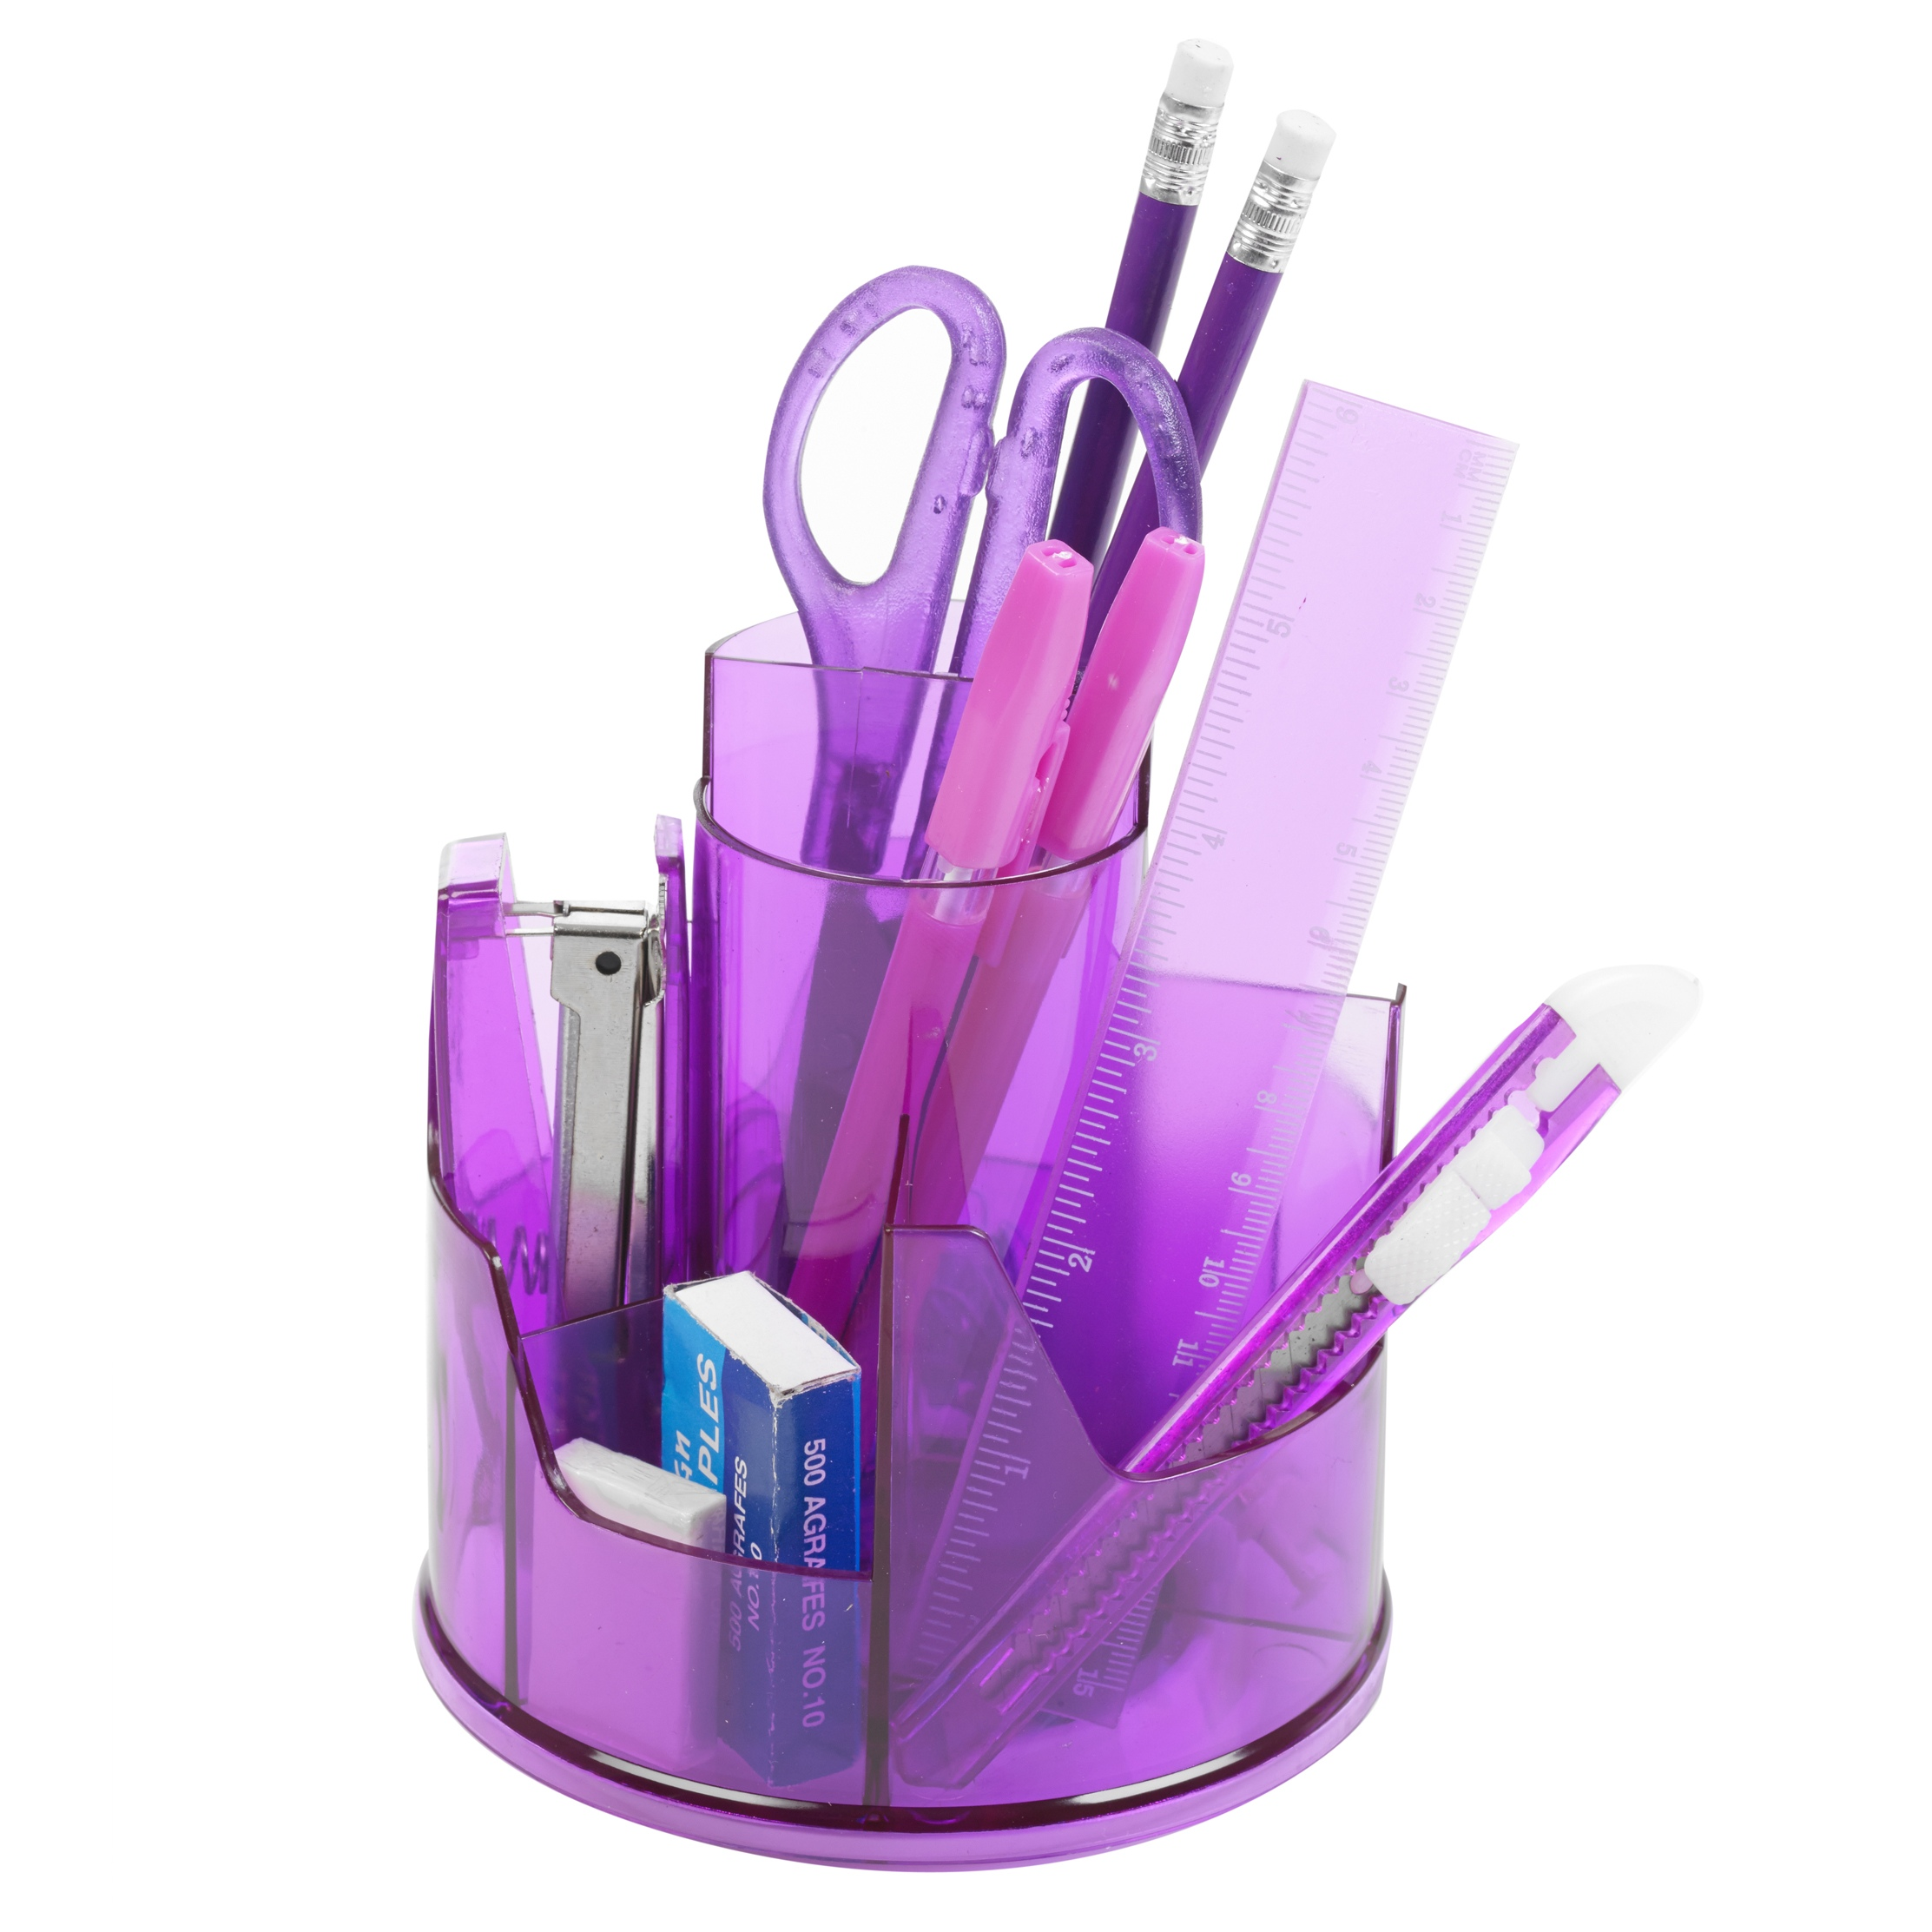 Details about 43pc Office Stationery Organiser Set Rotating Desk Tidy Pen  Holder Accessory Pot